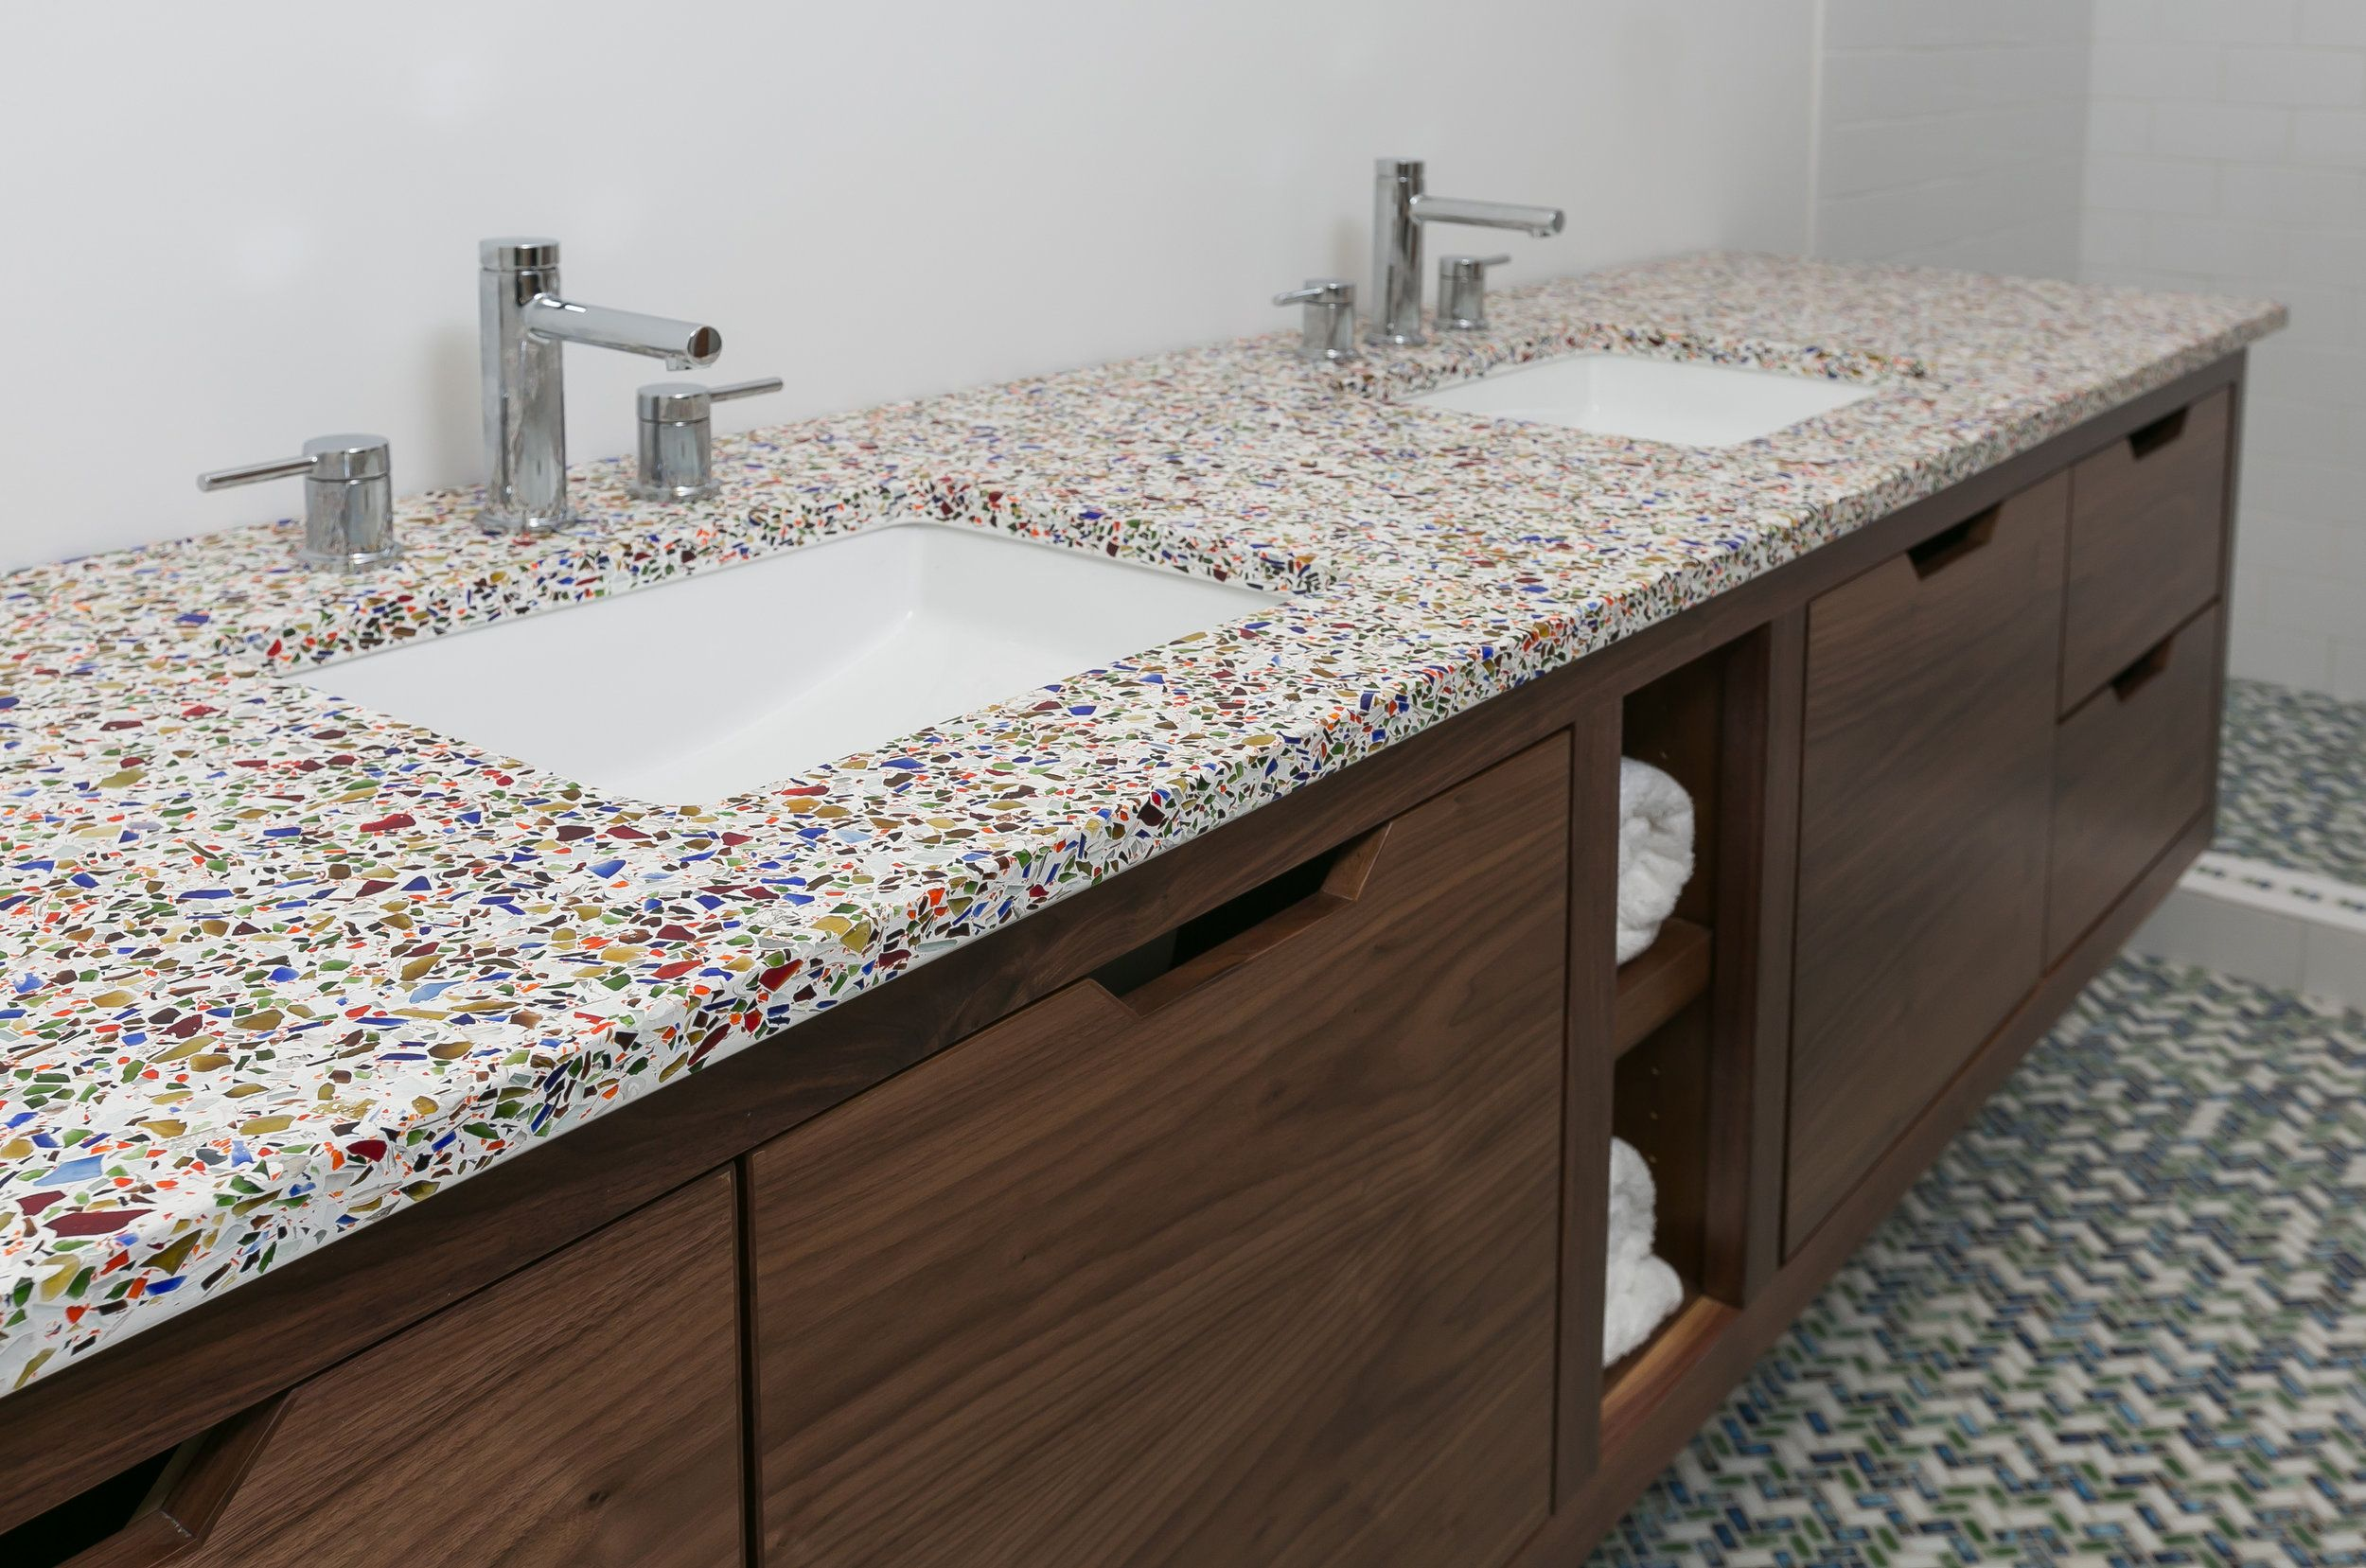 Confetti Bathroom Vanity By Gleco This Colorful Countertop Was Made With 100 Recycled Gl In North Charleston Sc